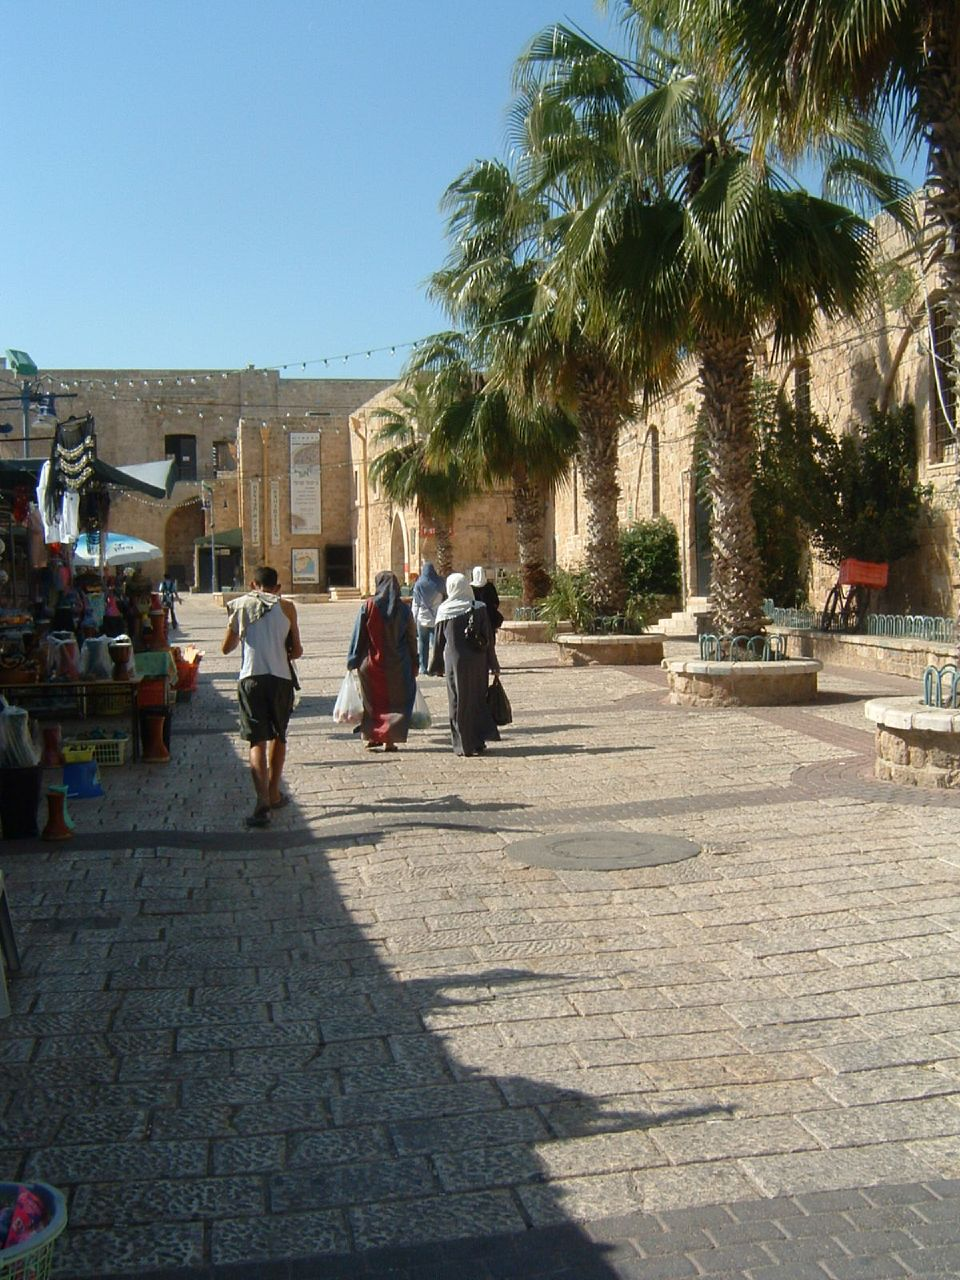 Acre - عكا : A street scene in the old city